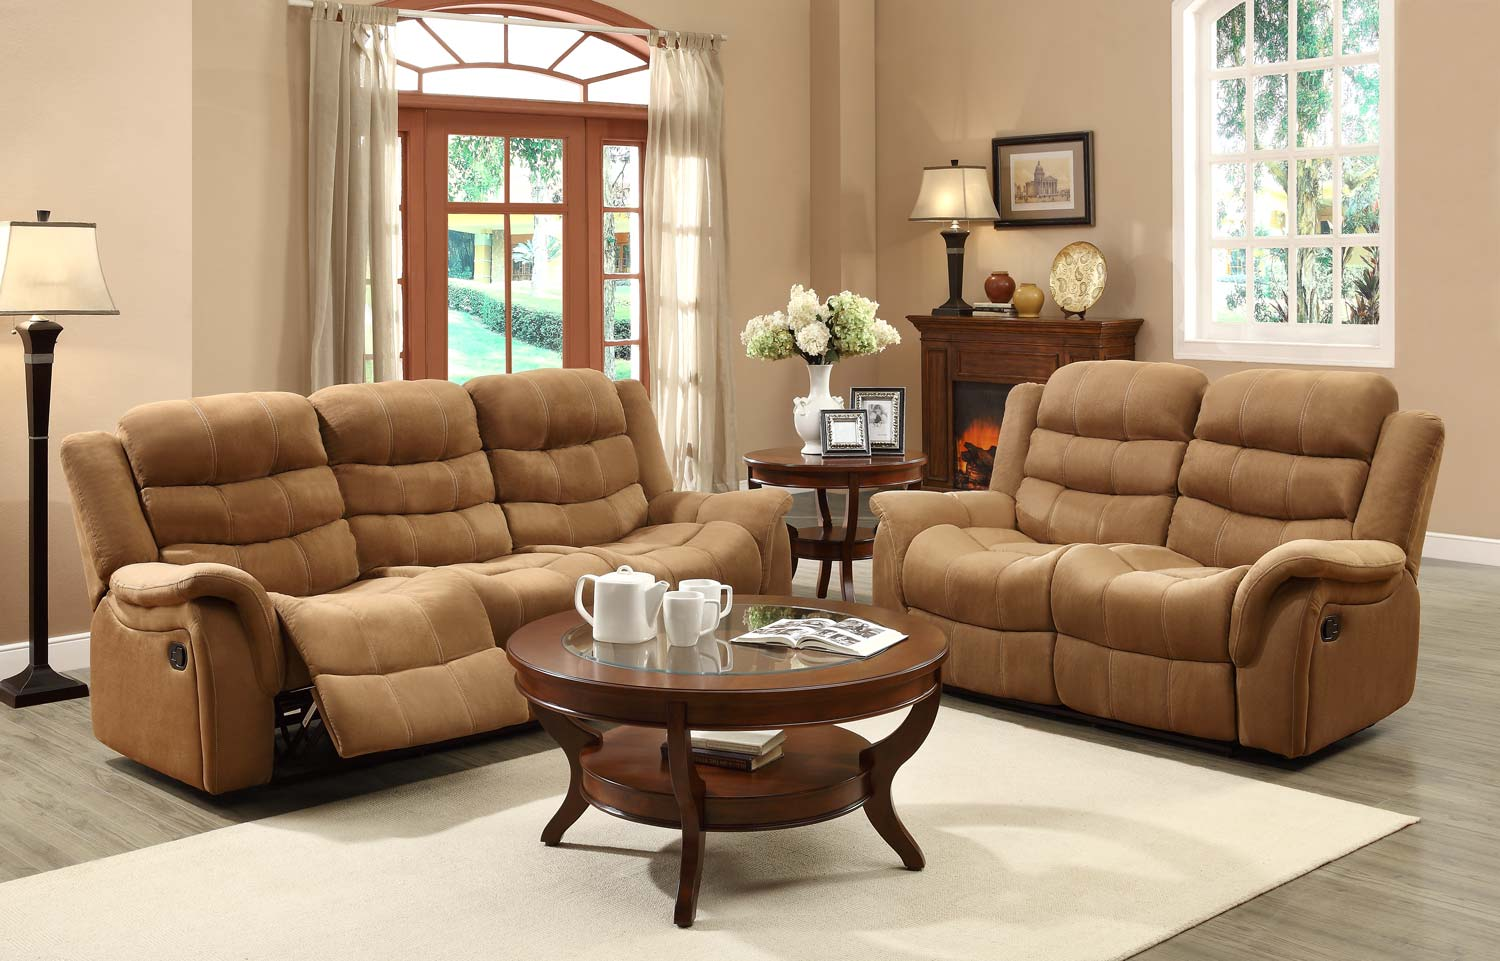 Information about Homelegance Huxley Reclining Sofa Set Product Photo